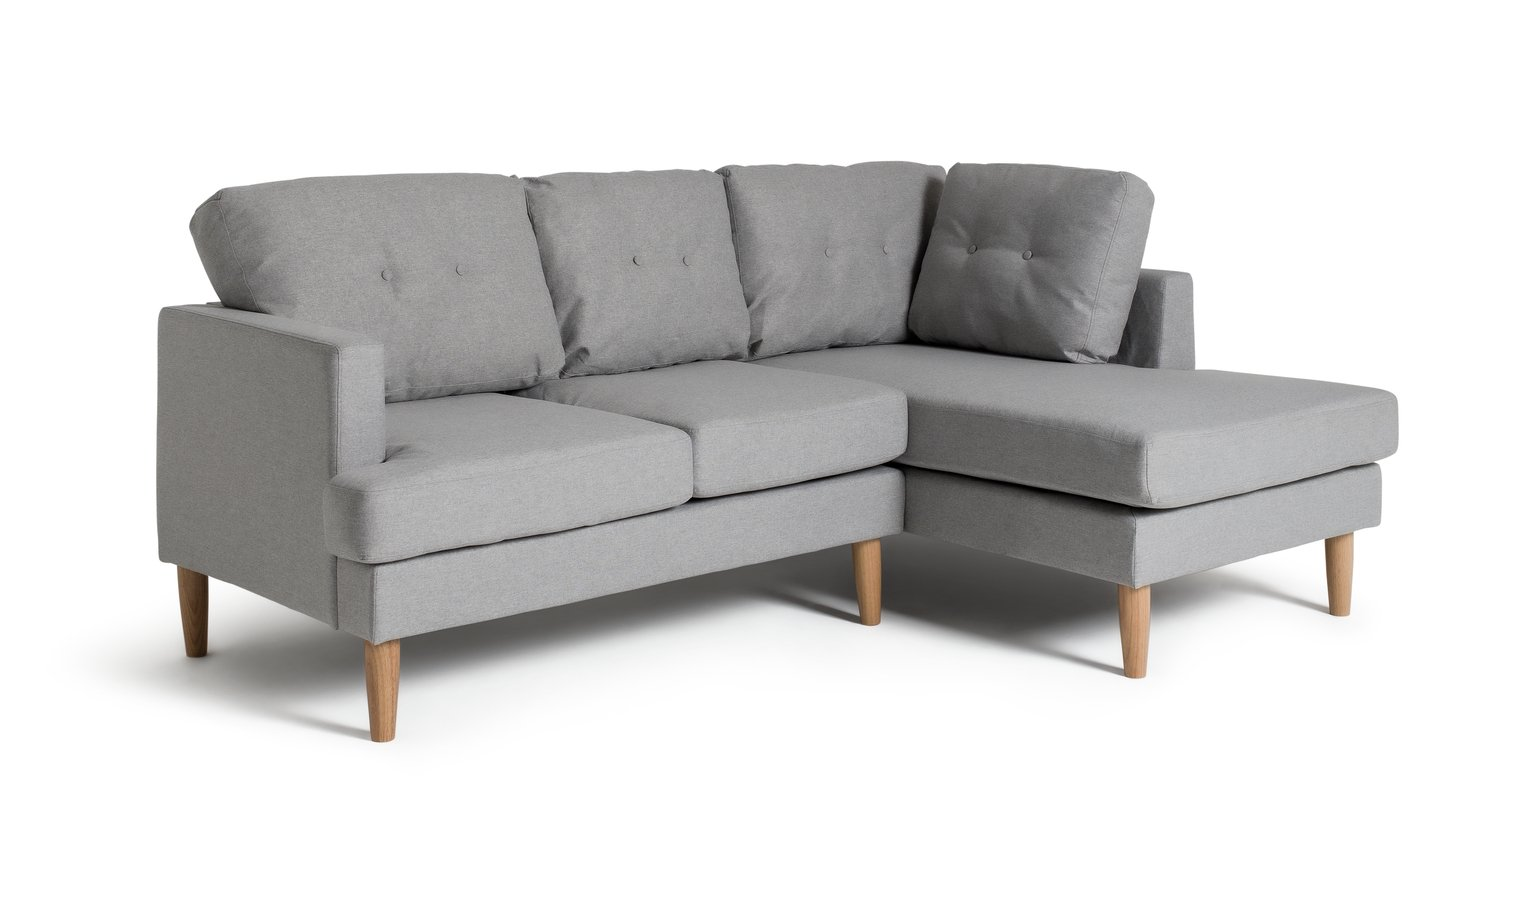 Habitat Joshua Right Corner Fabric Sofa - Light Grey